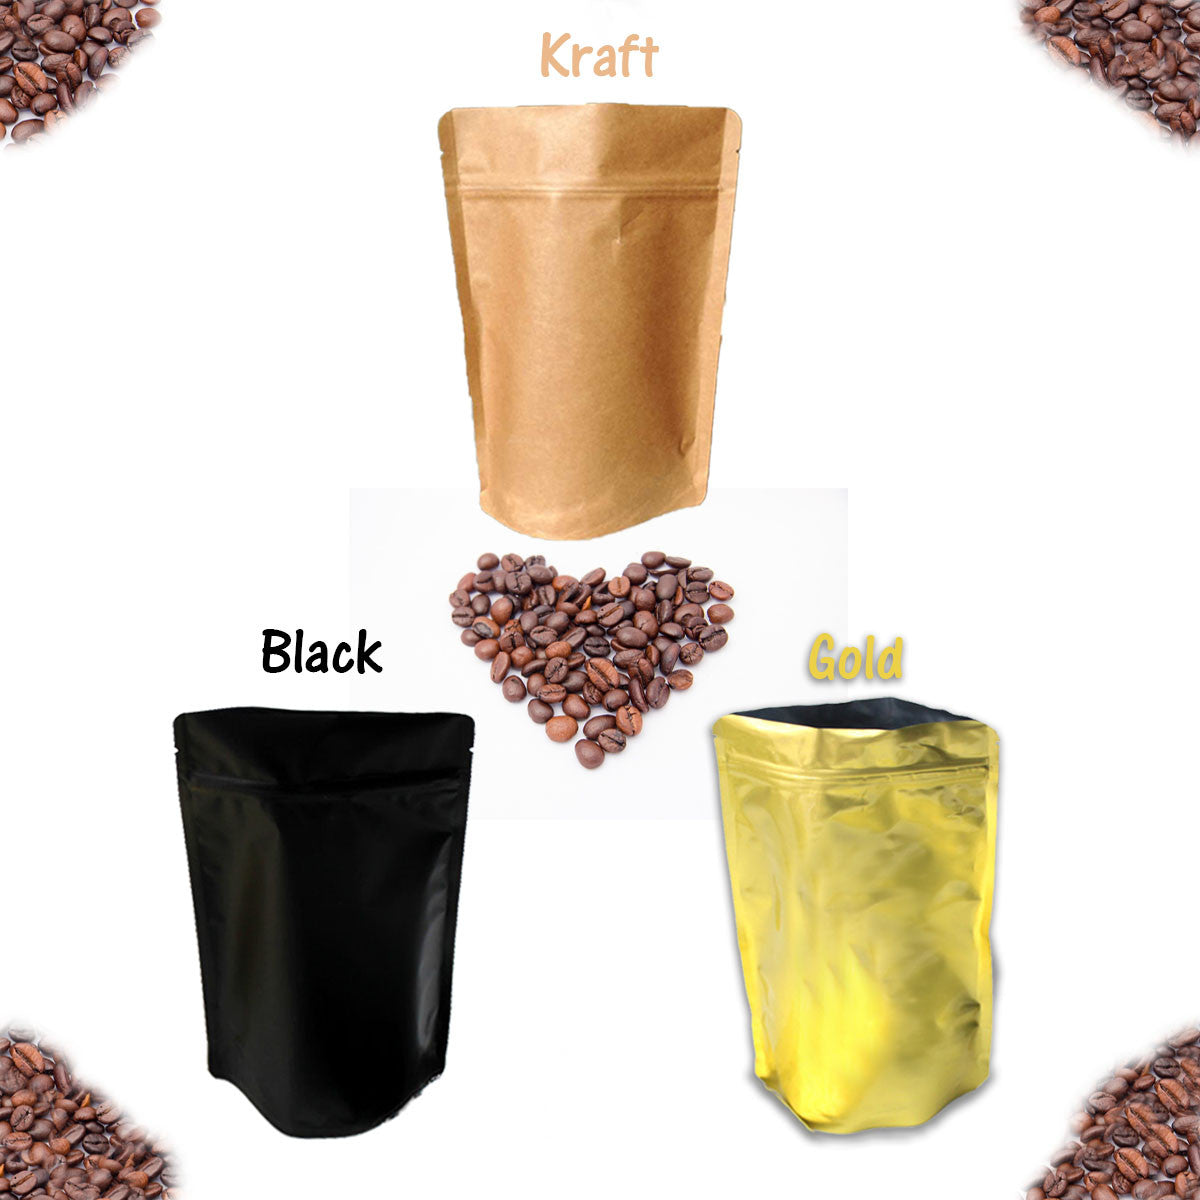 8 oz Stand Up Food Safe Resealable Foil Lined Pouch Bags, Kraft, Gold, Black - Wrappingmeup